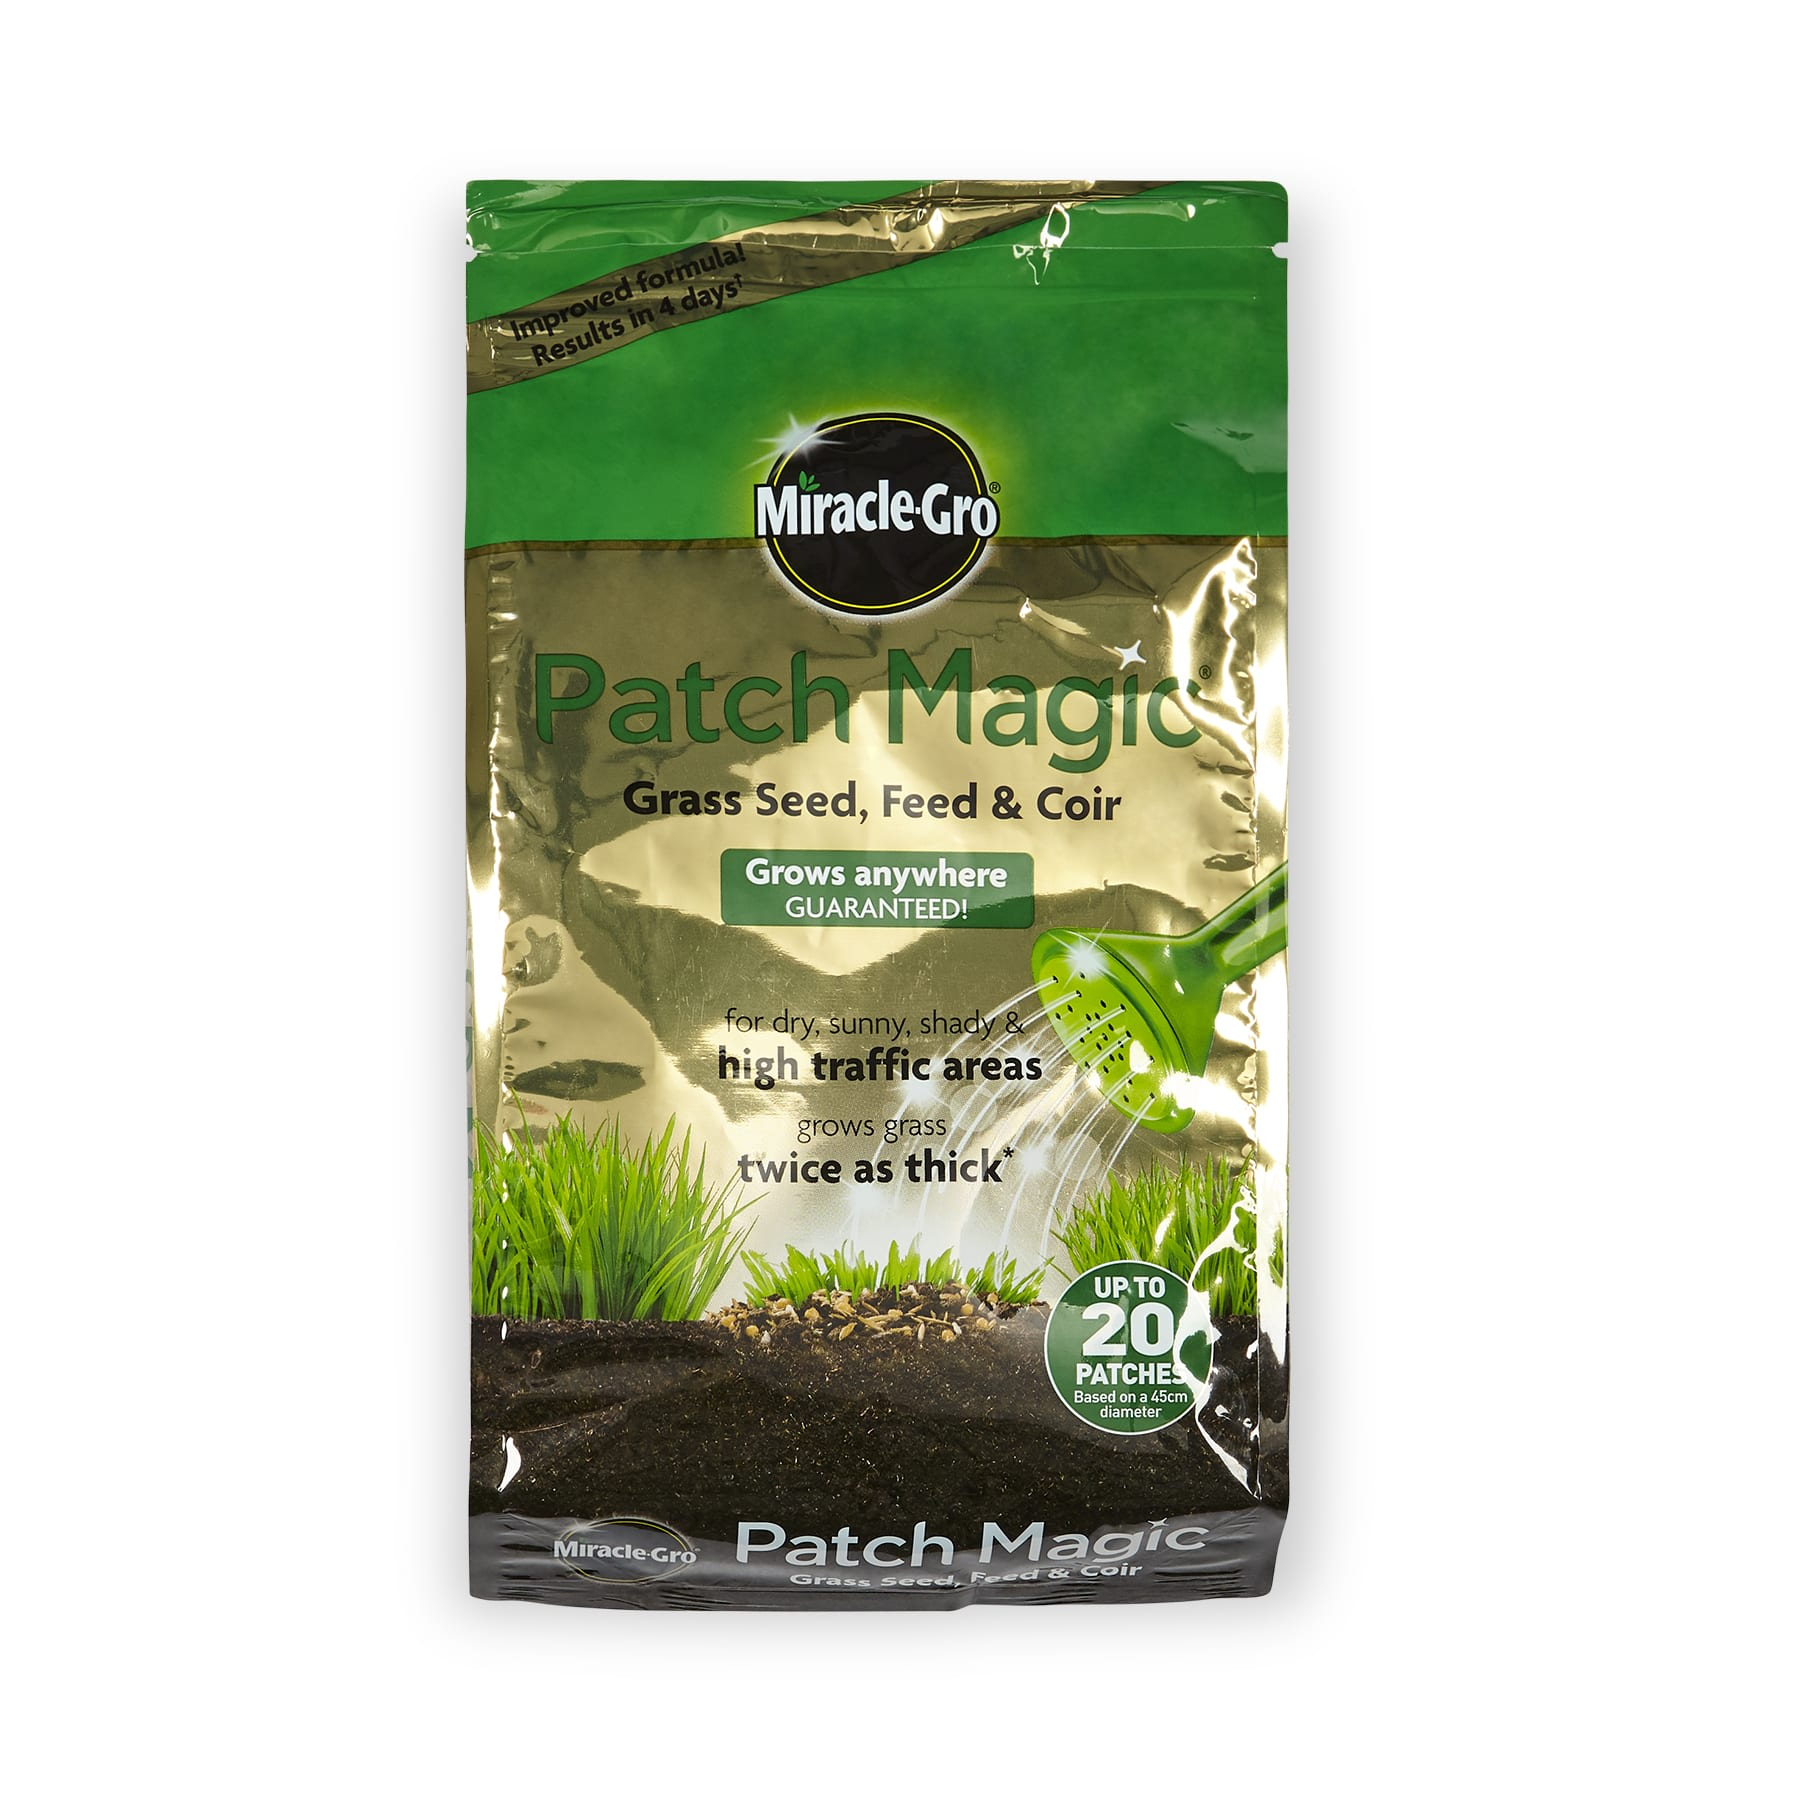 Miracle-Gro Patch Magic Grass Seed, Feed and Coir Bag